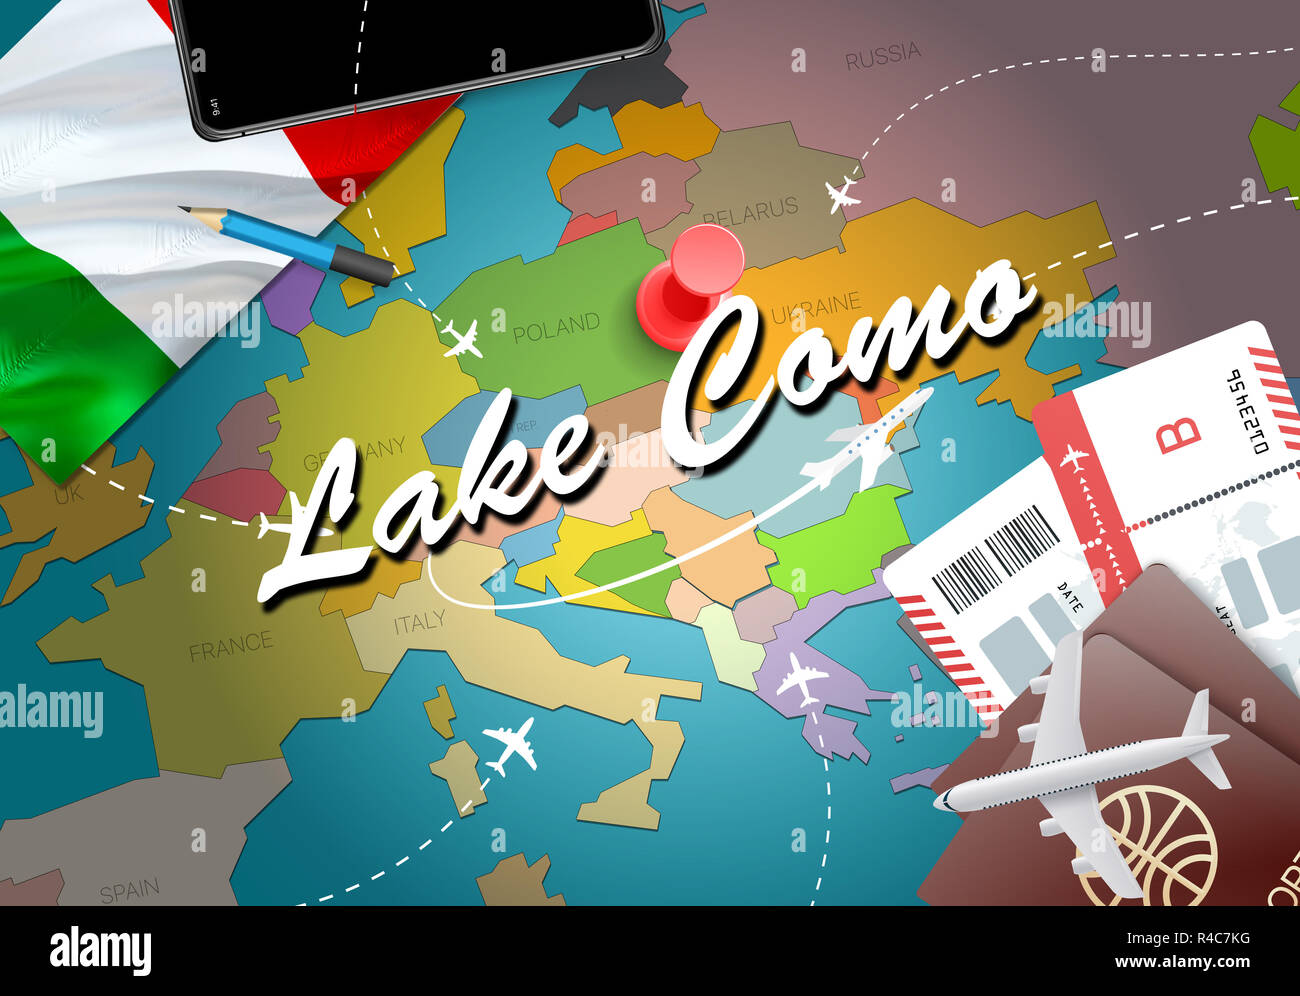 Lake Como City Travel And Tourism Destination Concept Italy Flag